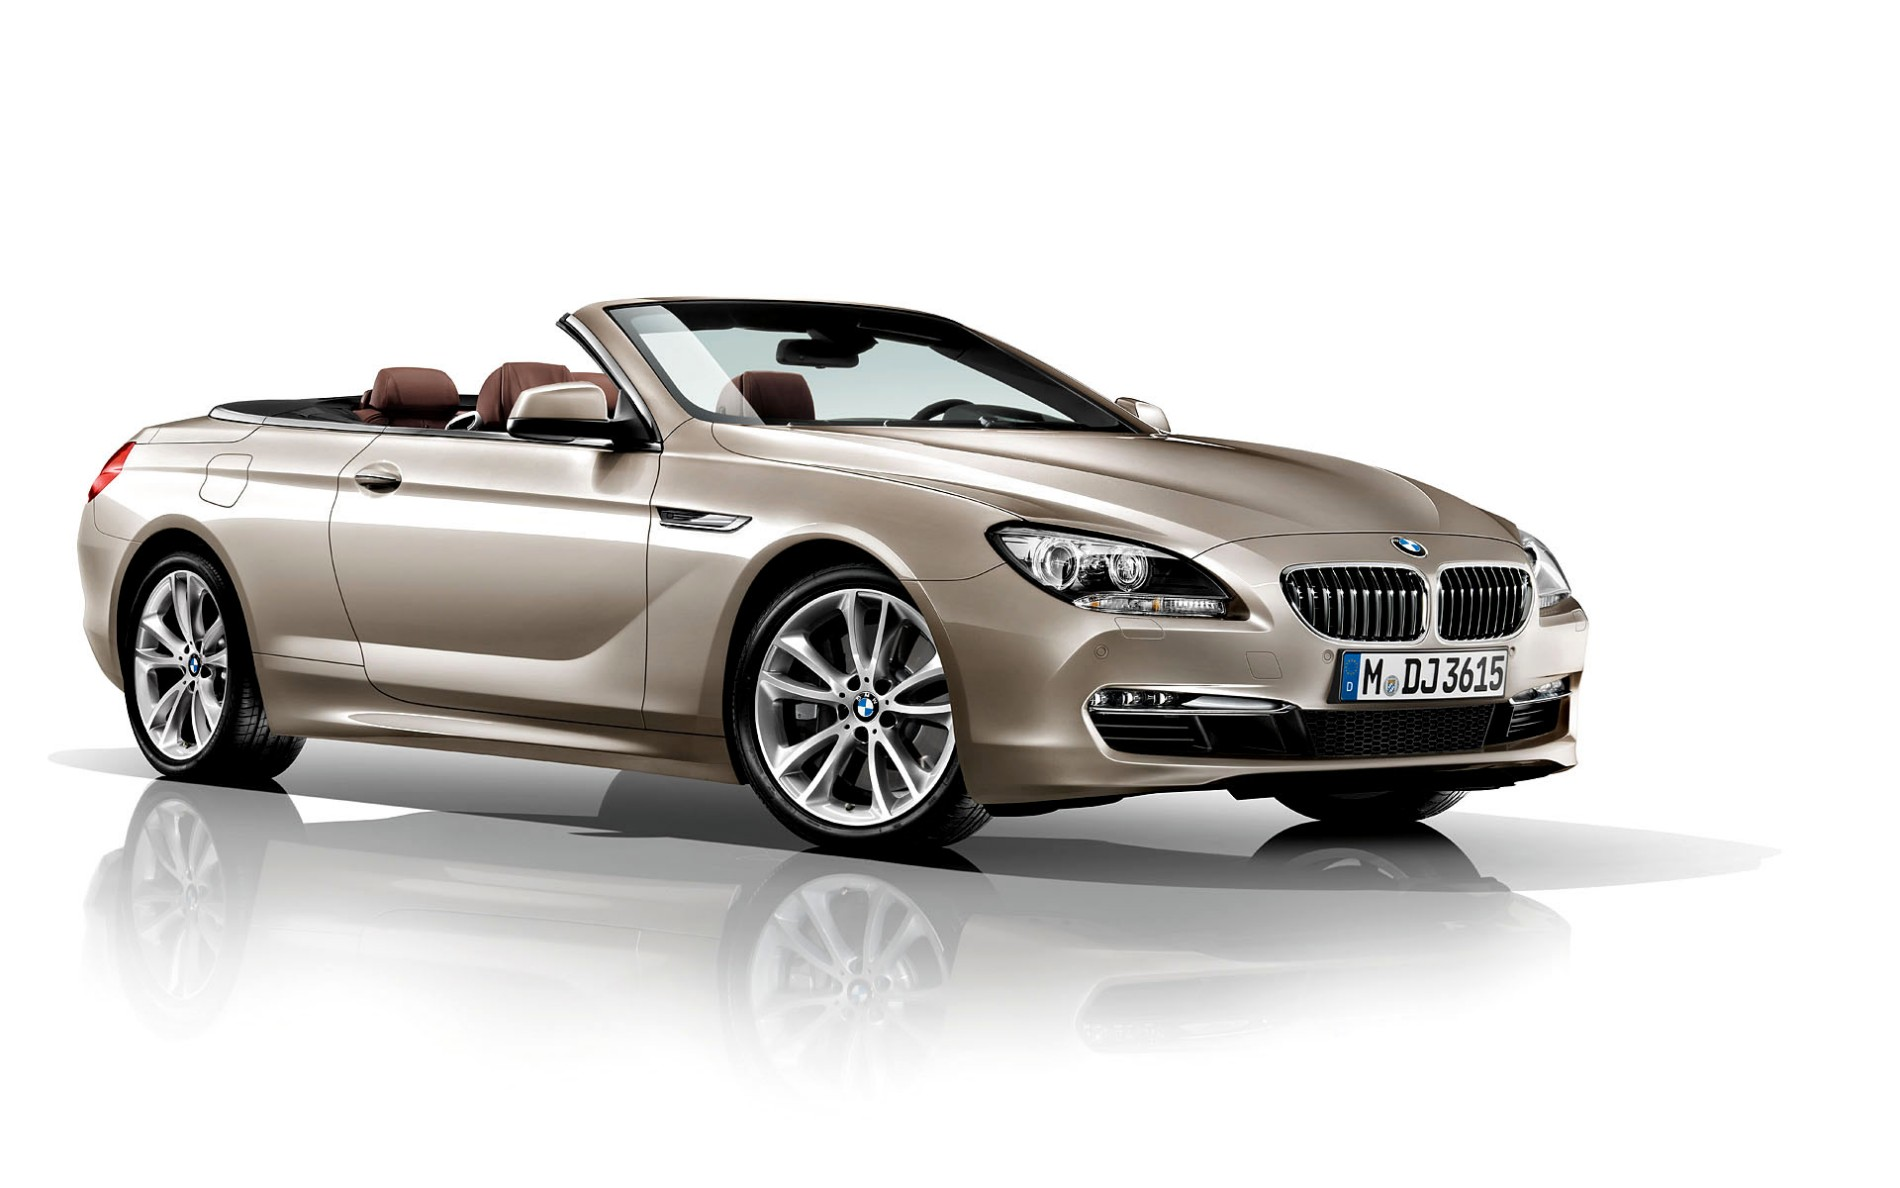 bmw 640i convertible-pic. 1